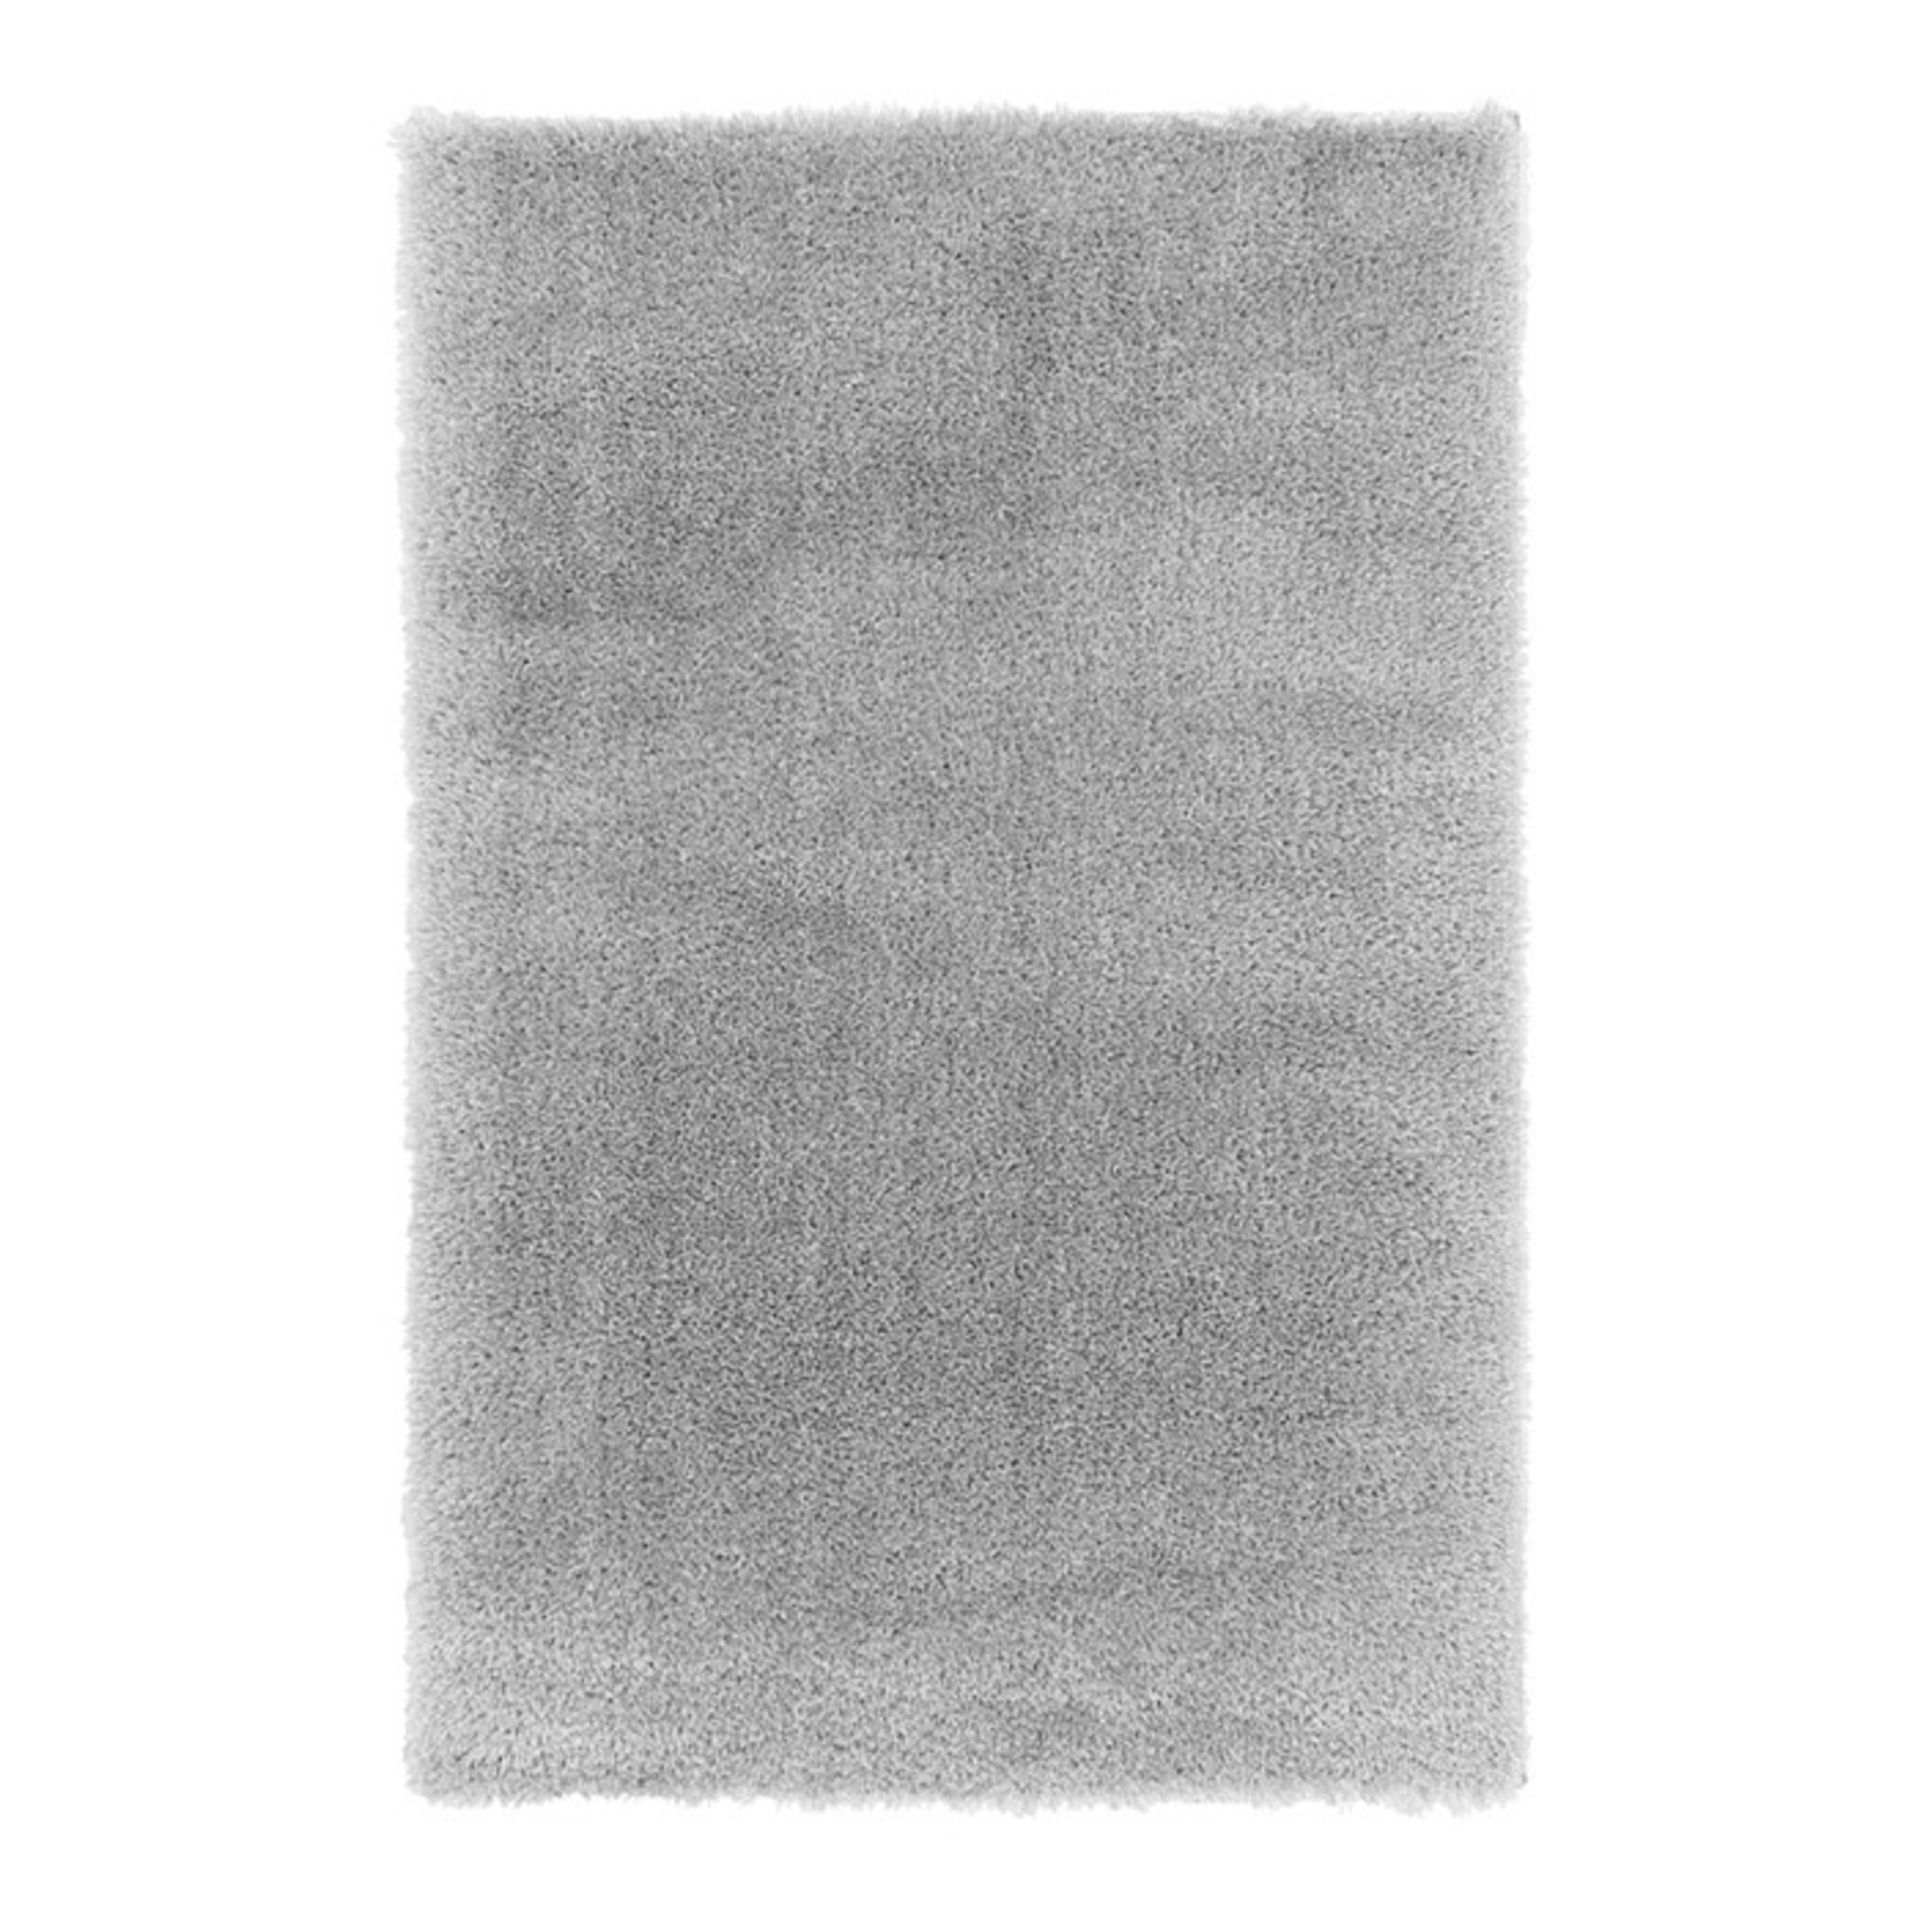 Well Woven,Feather Shag Super Thick Modern Grey Area Rug - RRP £83.99 (160x220cm) (WEWO1036 -16899/